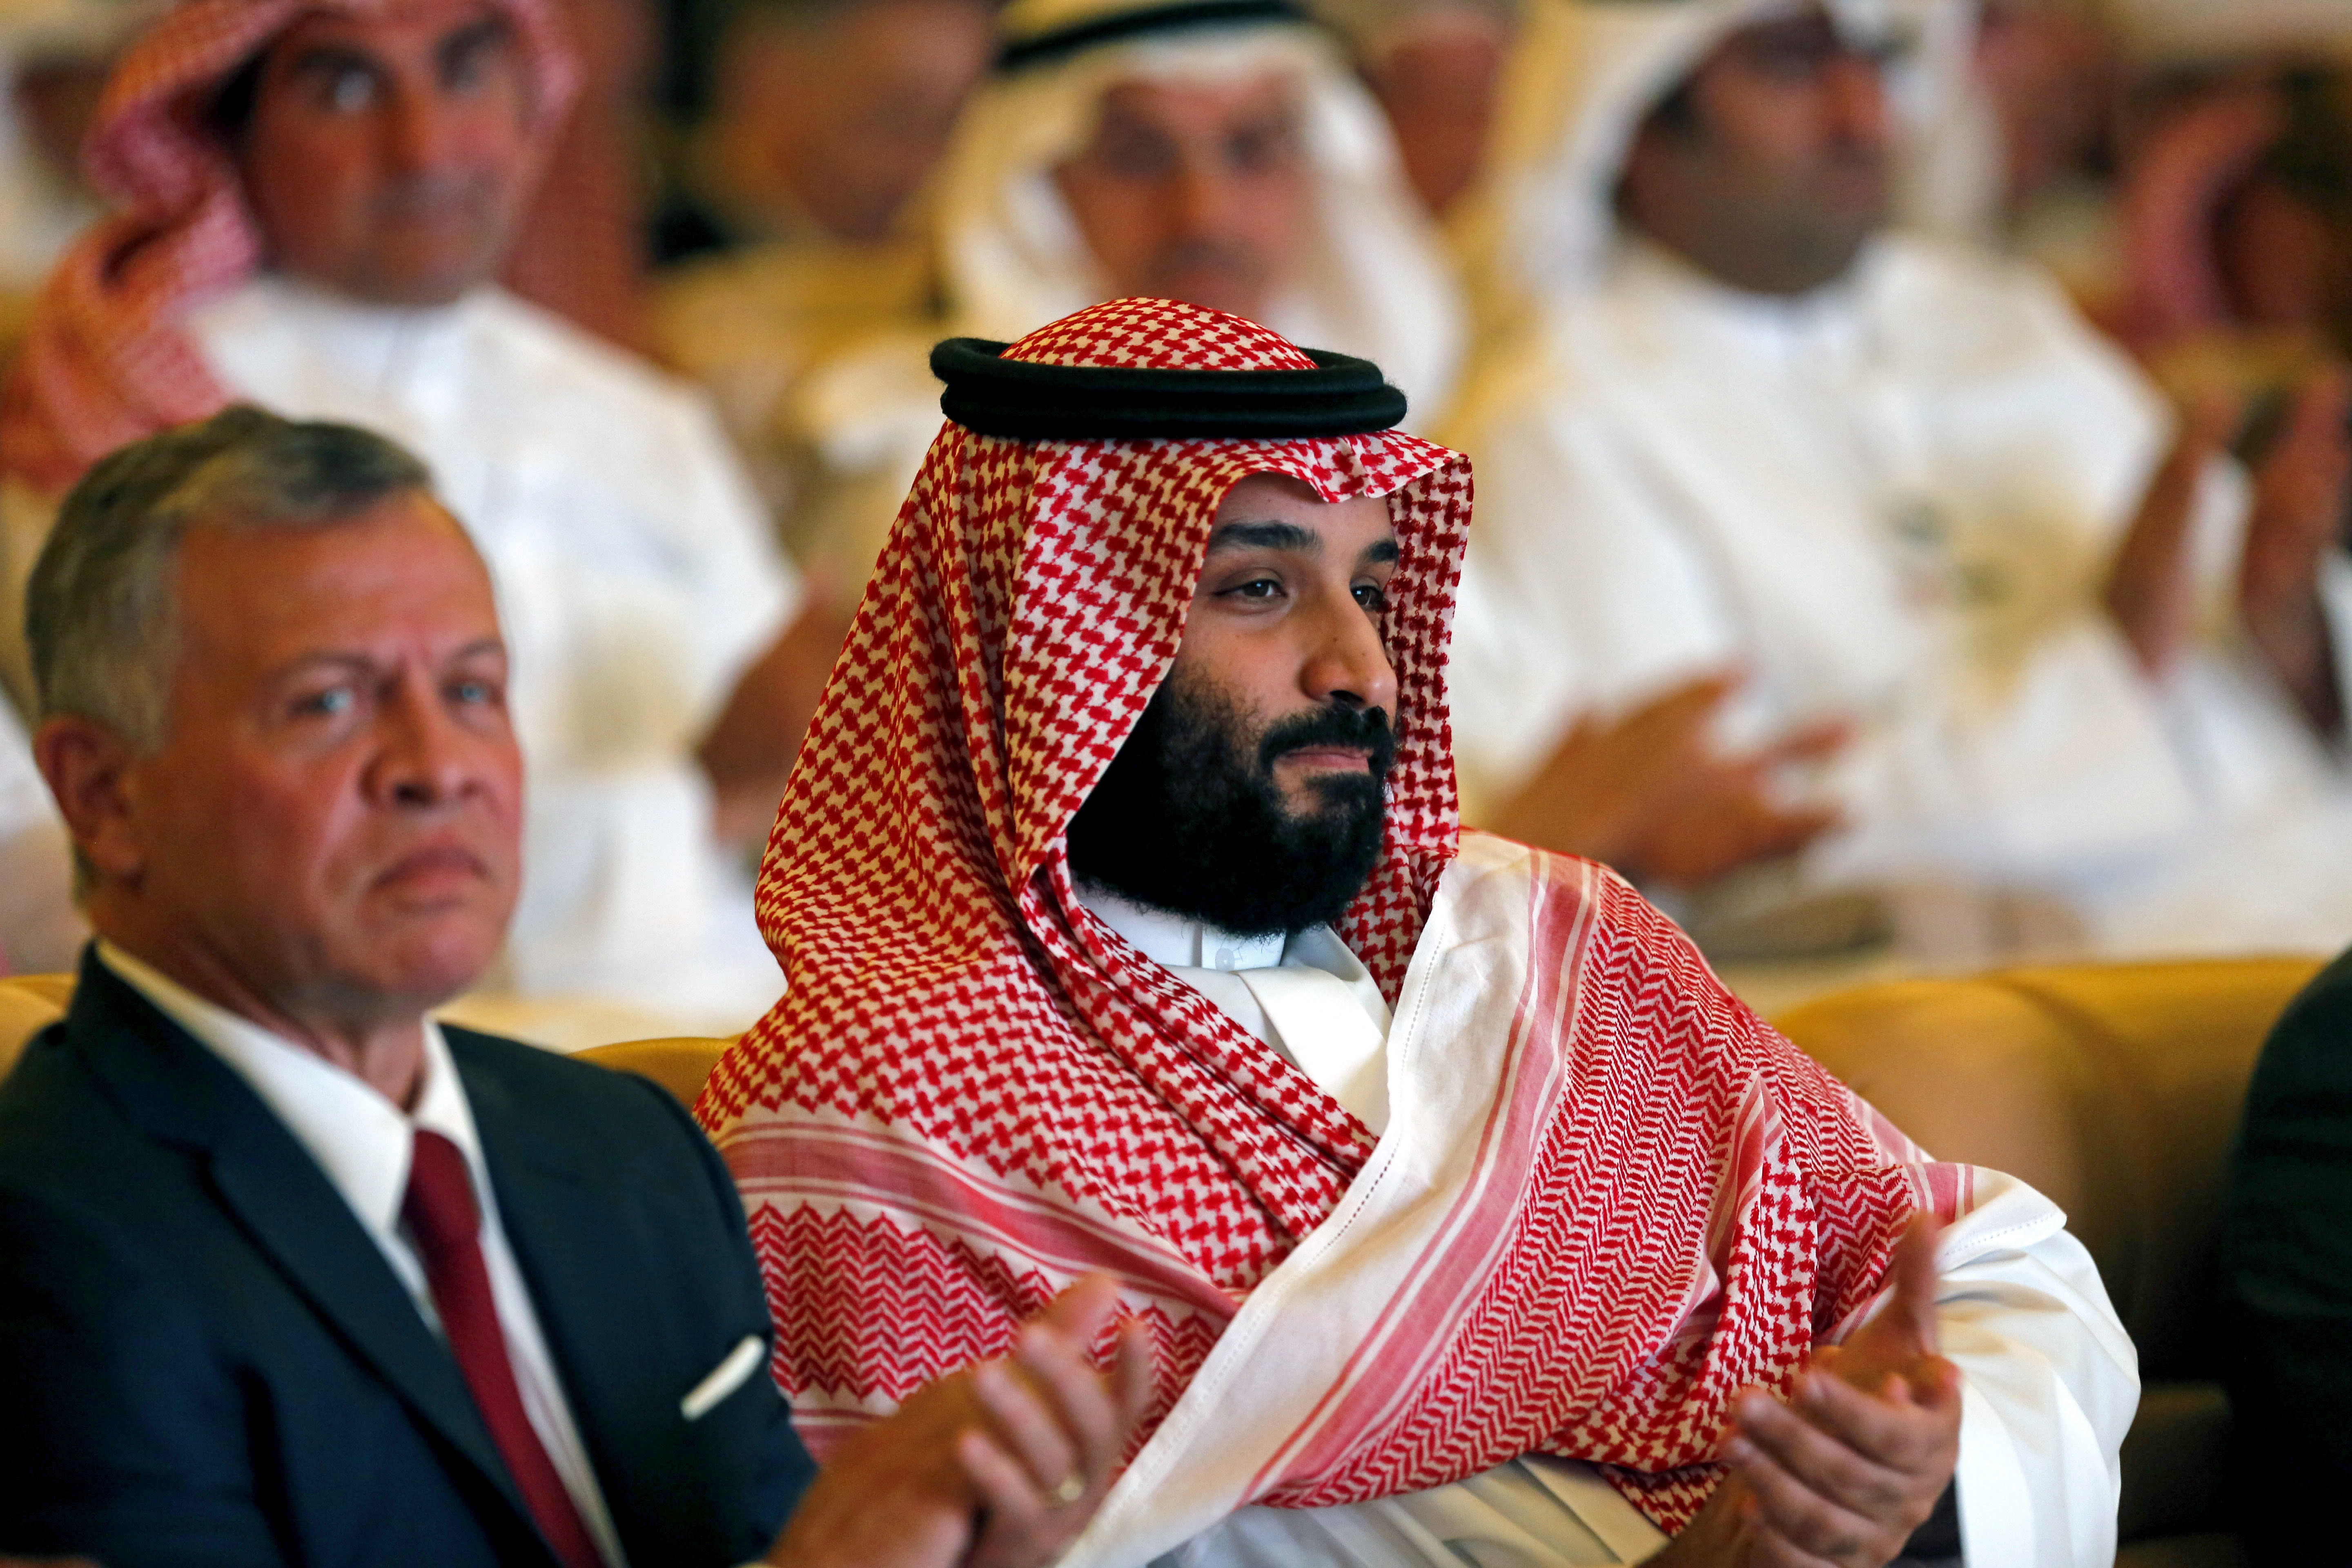 Saudi Crown Prince, Mohammed bin Salman, right, and Jordan's King Abdullah II, applaud at the Future Investment Initiative conference, in Riyadh, Saudi Arabia, Tuesday, Oct. 23, 2018.The high-profile economic forum in Saudi Arabia is the kingdom's first major event on the world stage since the killing of writer Jamal Khashoggi at the Saudi Consulate in Istanbul earlier this month. (AP Photo/Amr Nabil)